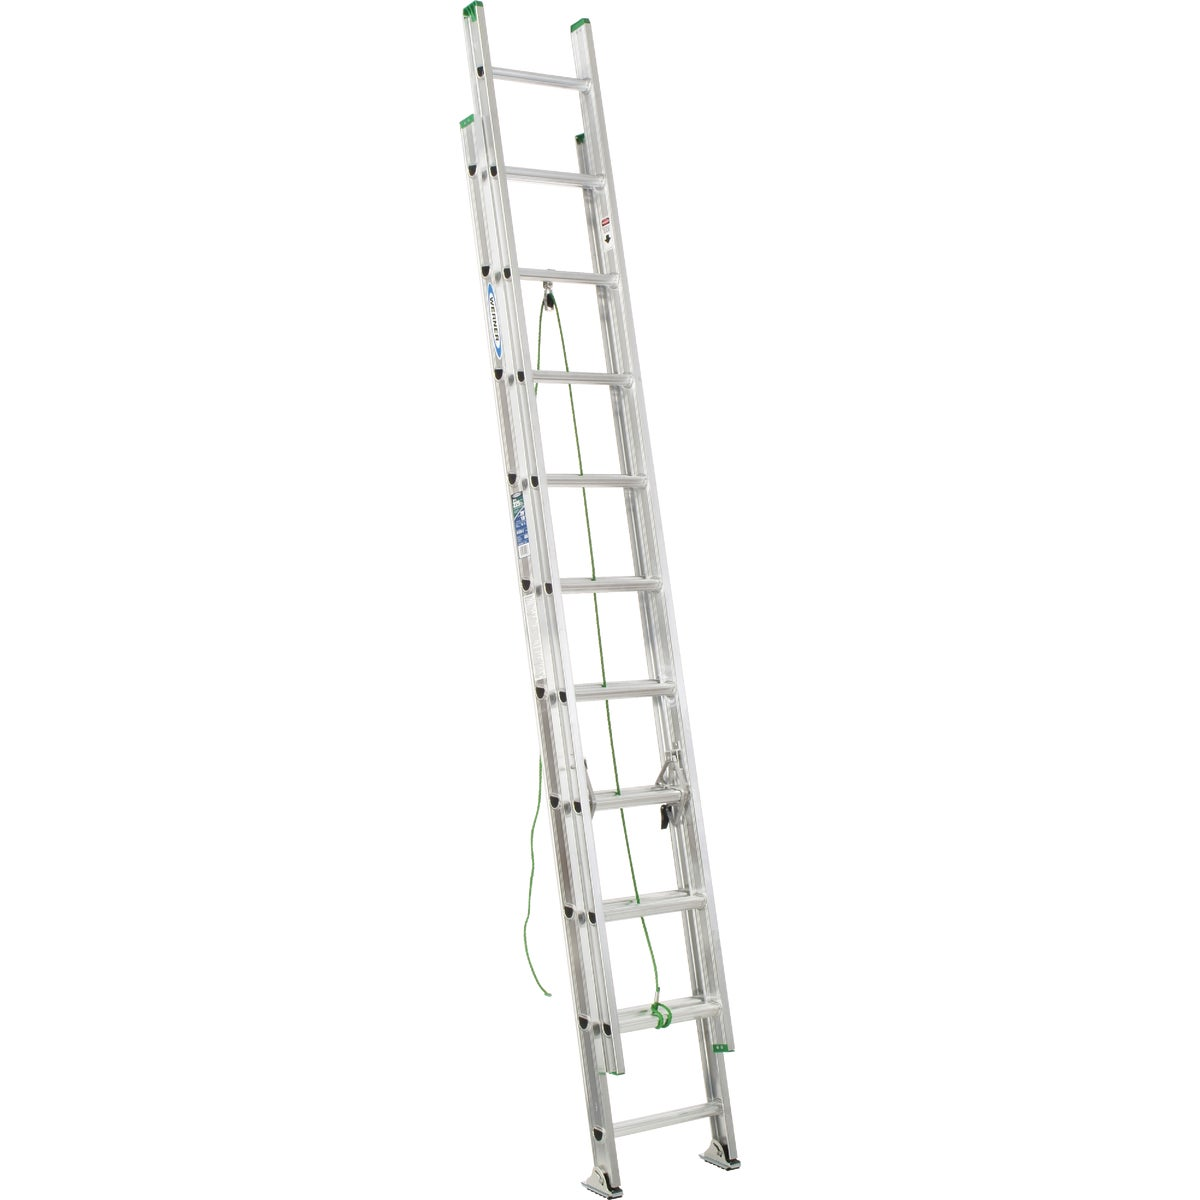 T-2 20' ALUM EXT LADDER